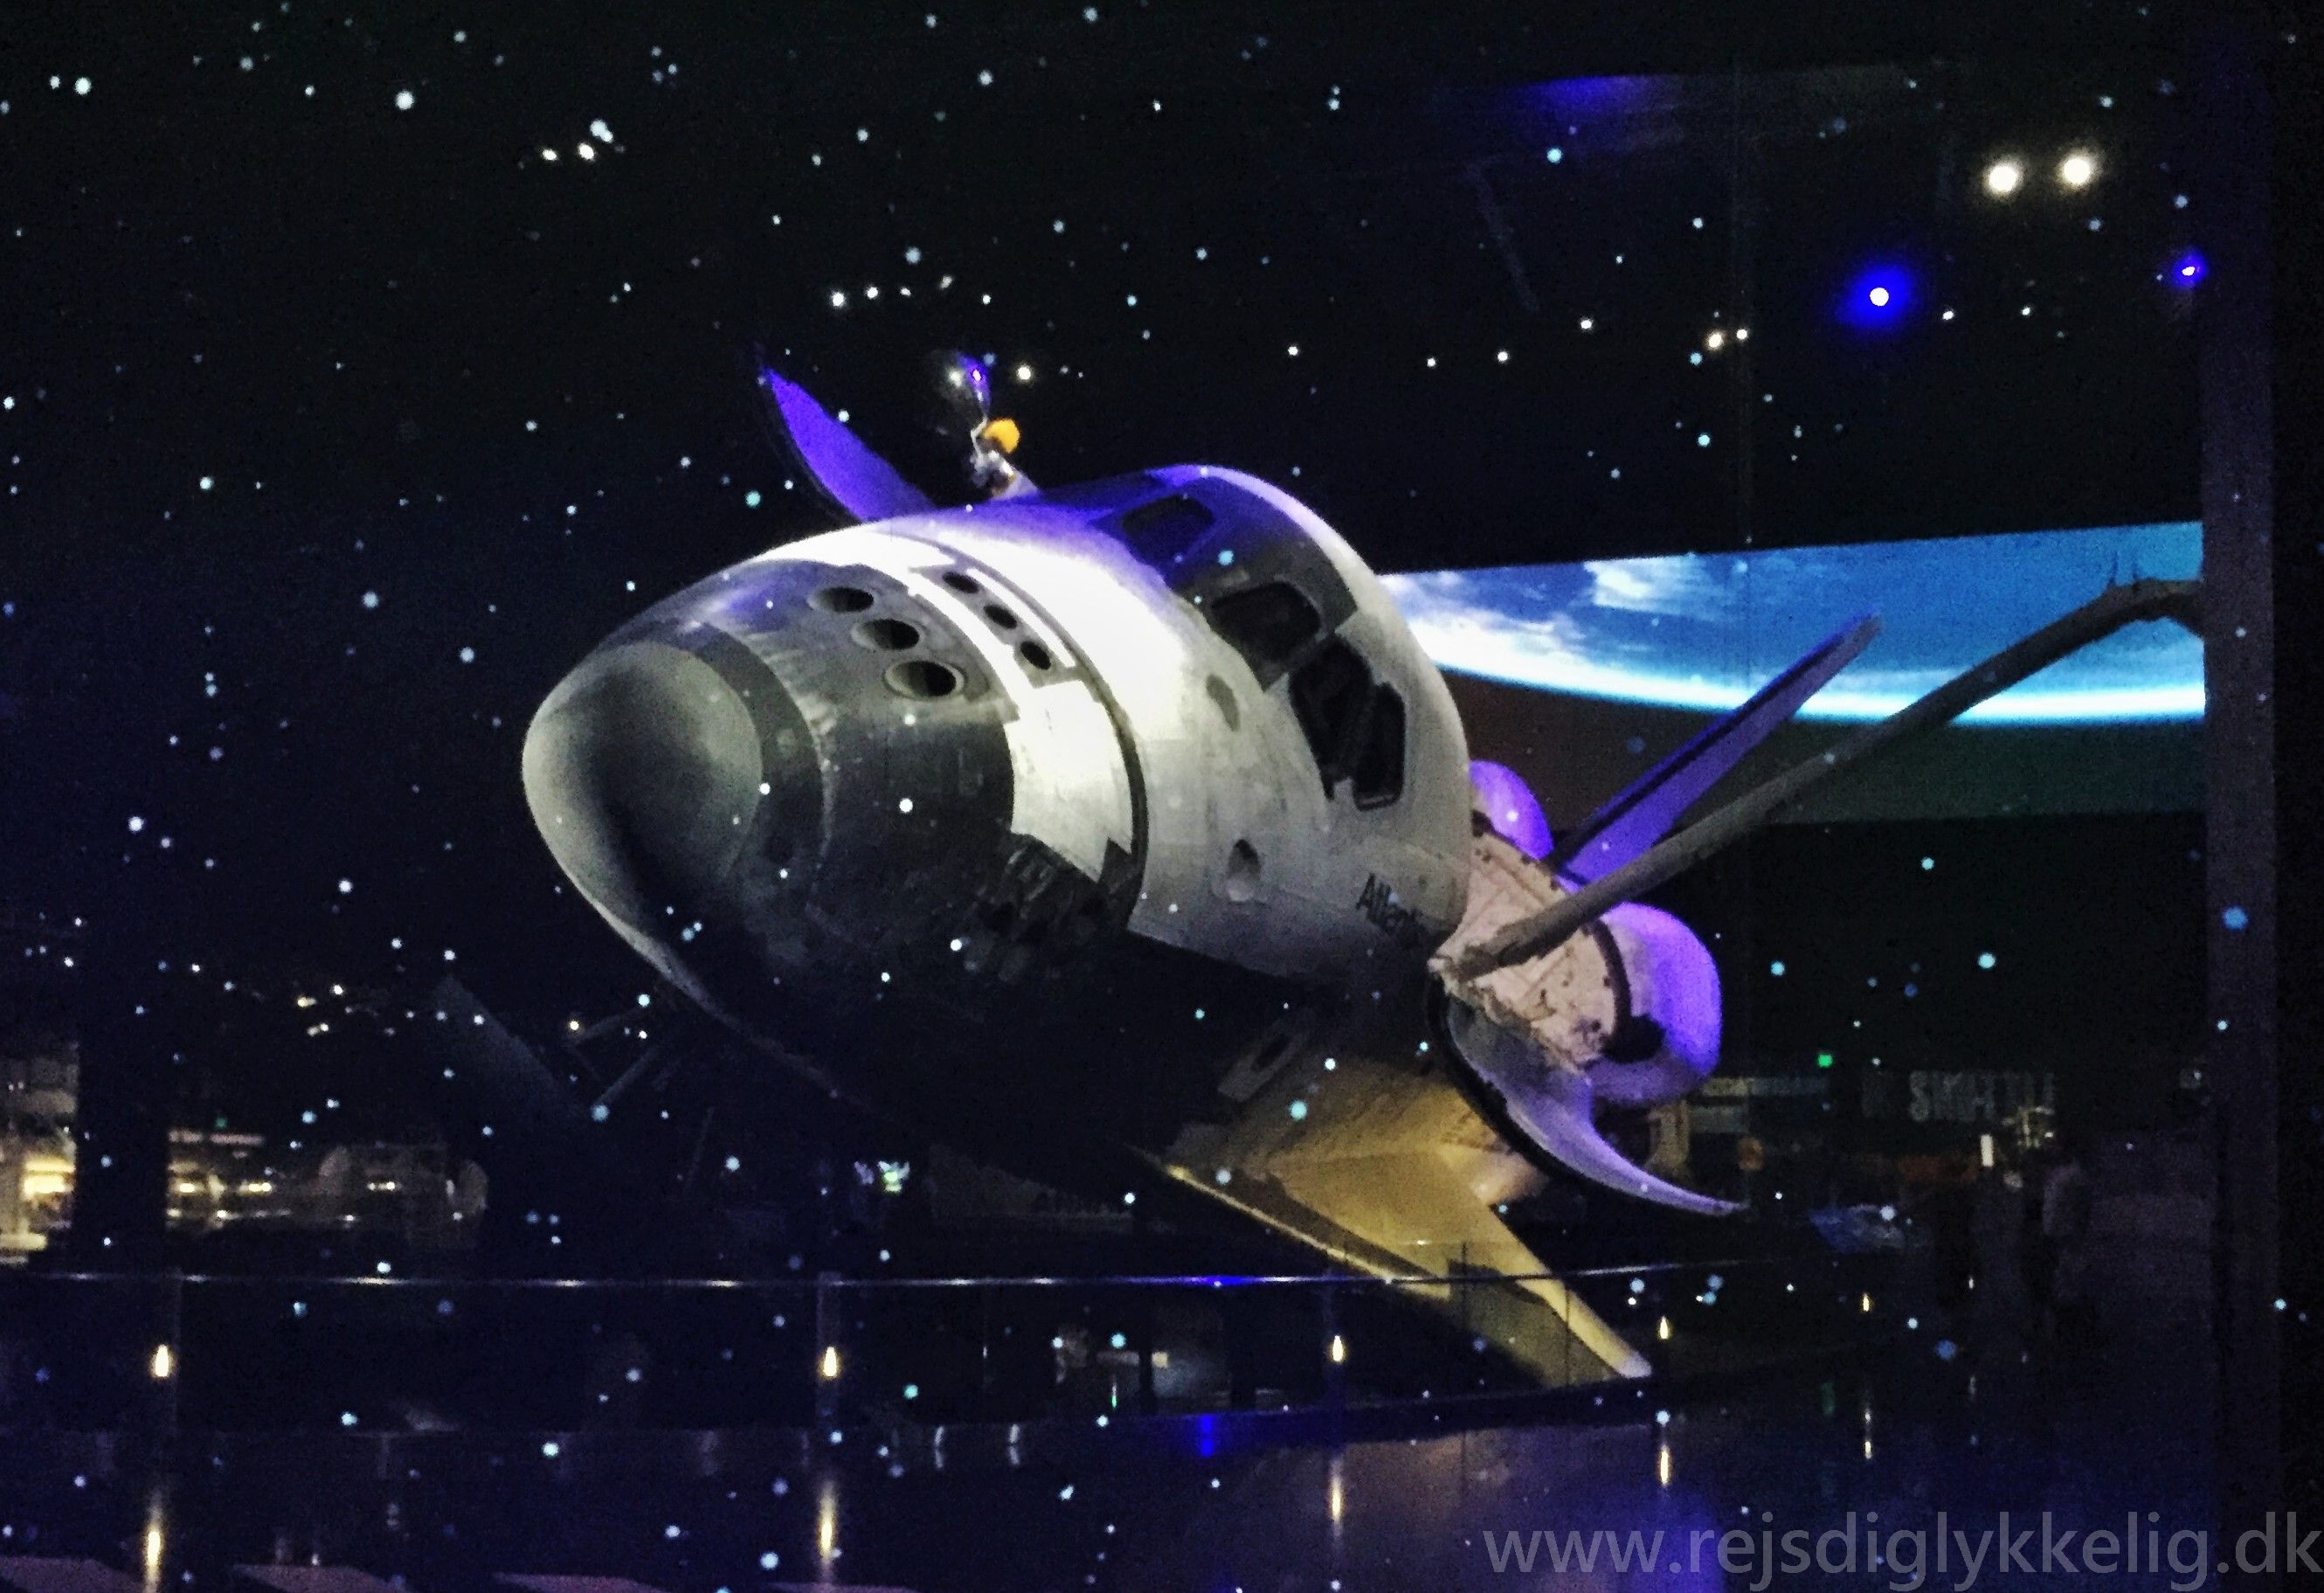 Rumskibet Atlantis hos Kennedy Space center